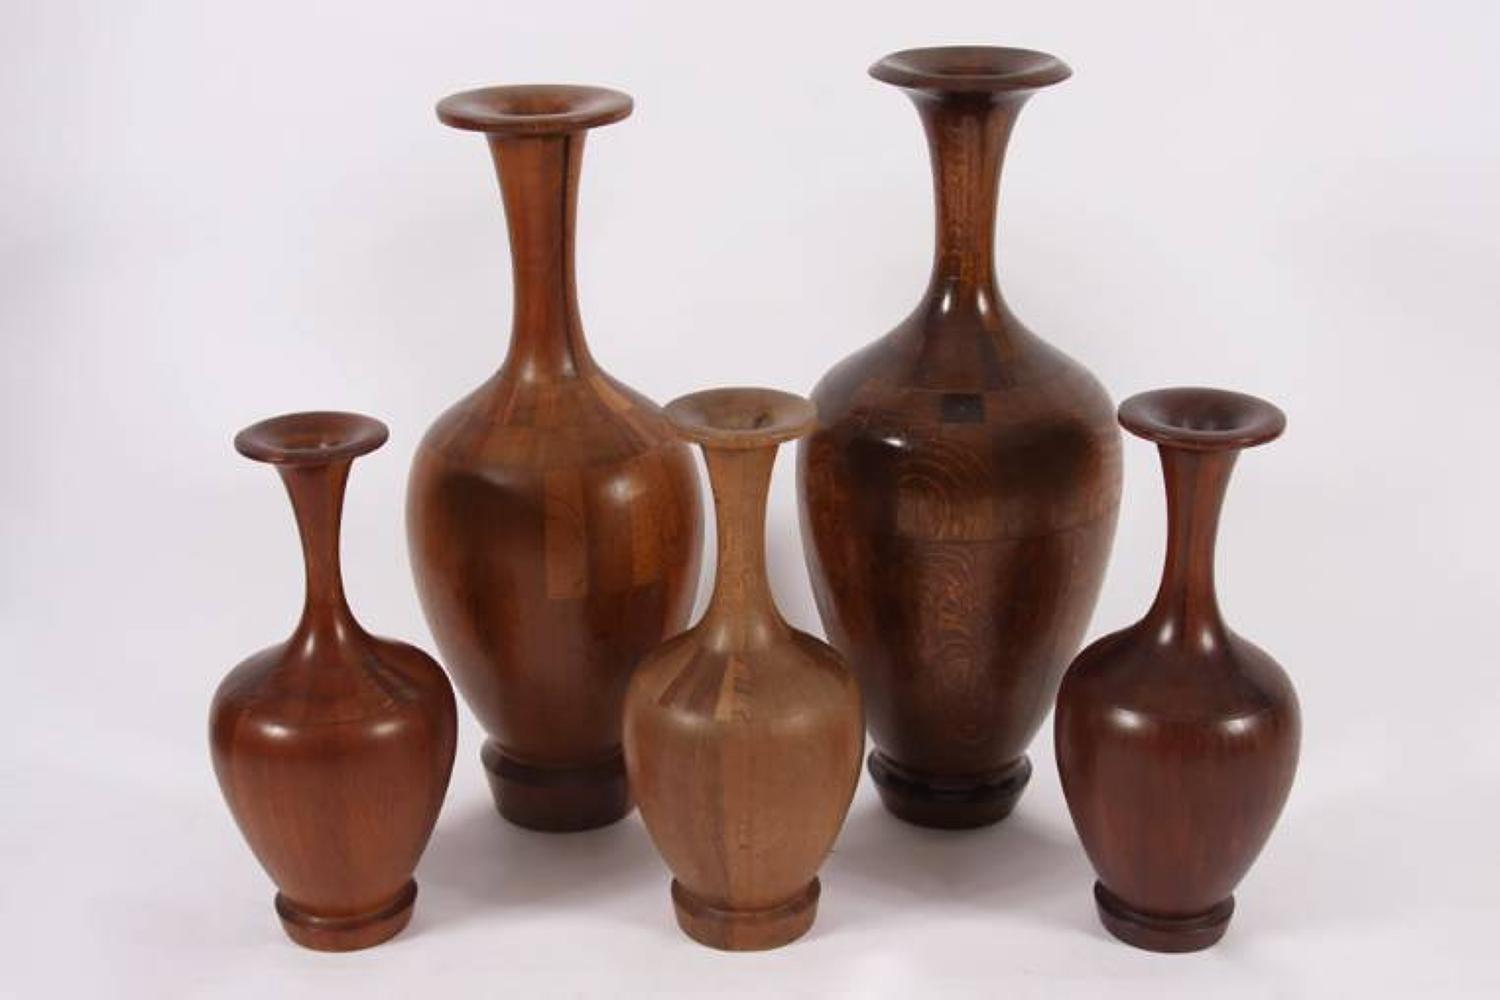 Set of Wooden Vases